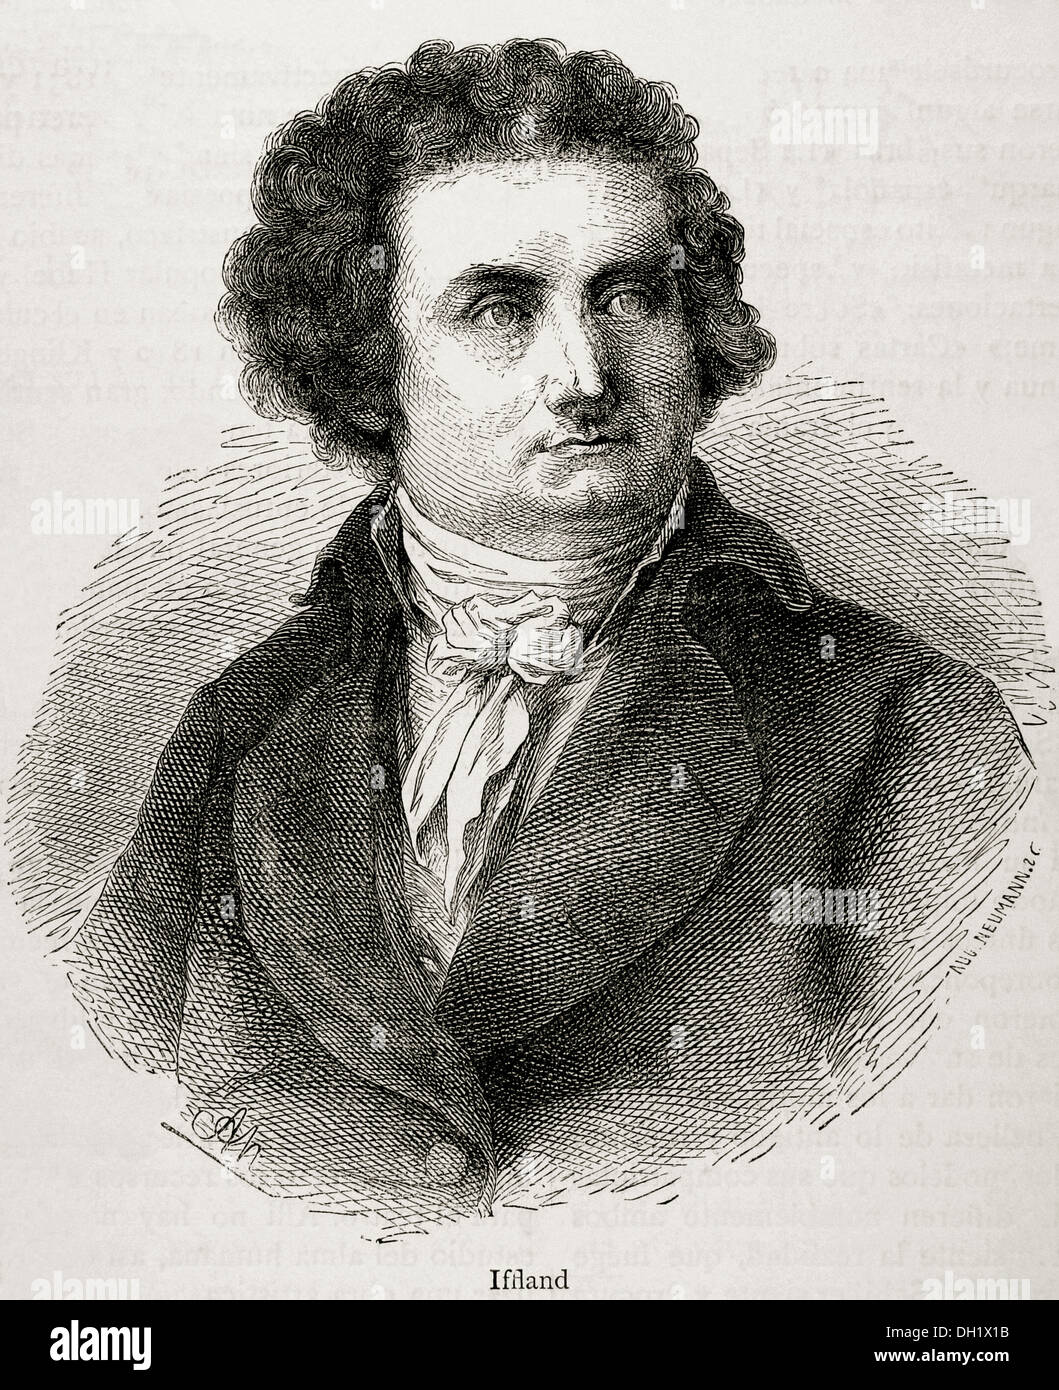 August Wilhelm Iffland (1759-1814). German actor and playwright. Engraving in Our Century, 1883. - Stock Image